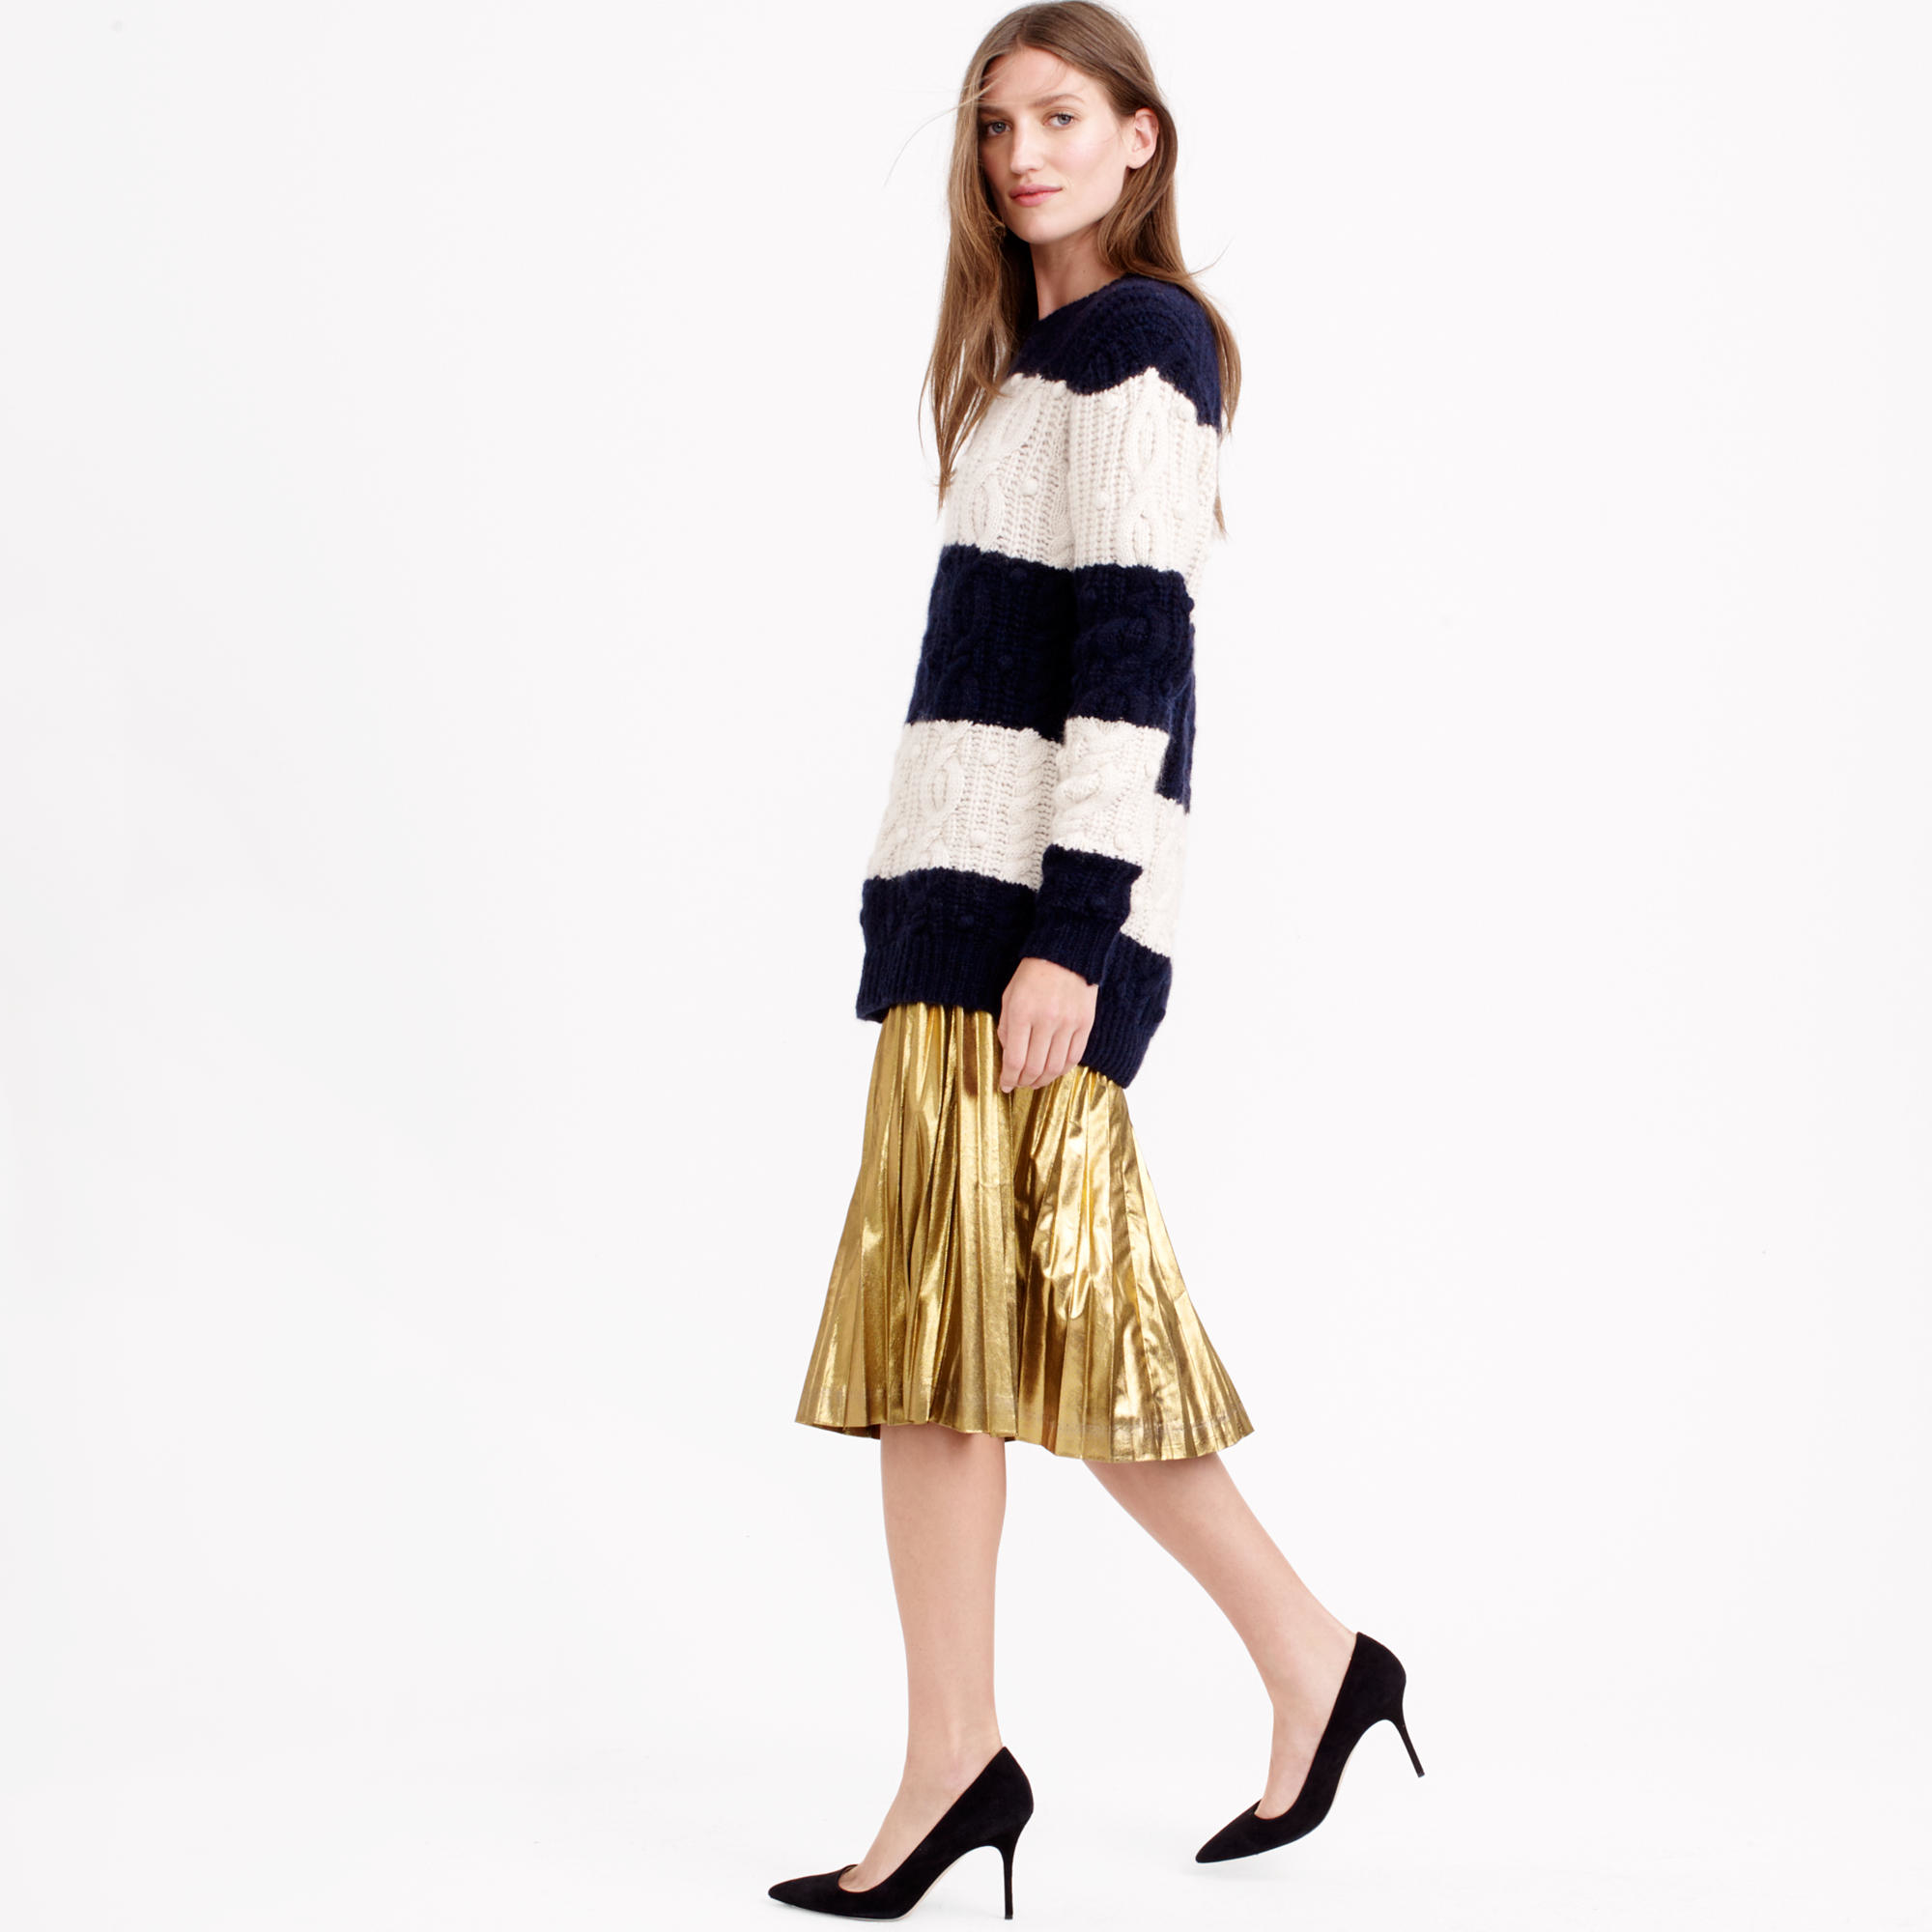 J.crew Pleated Midi Skirt In Metallic in Metallic | Lyst